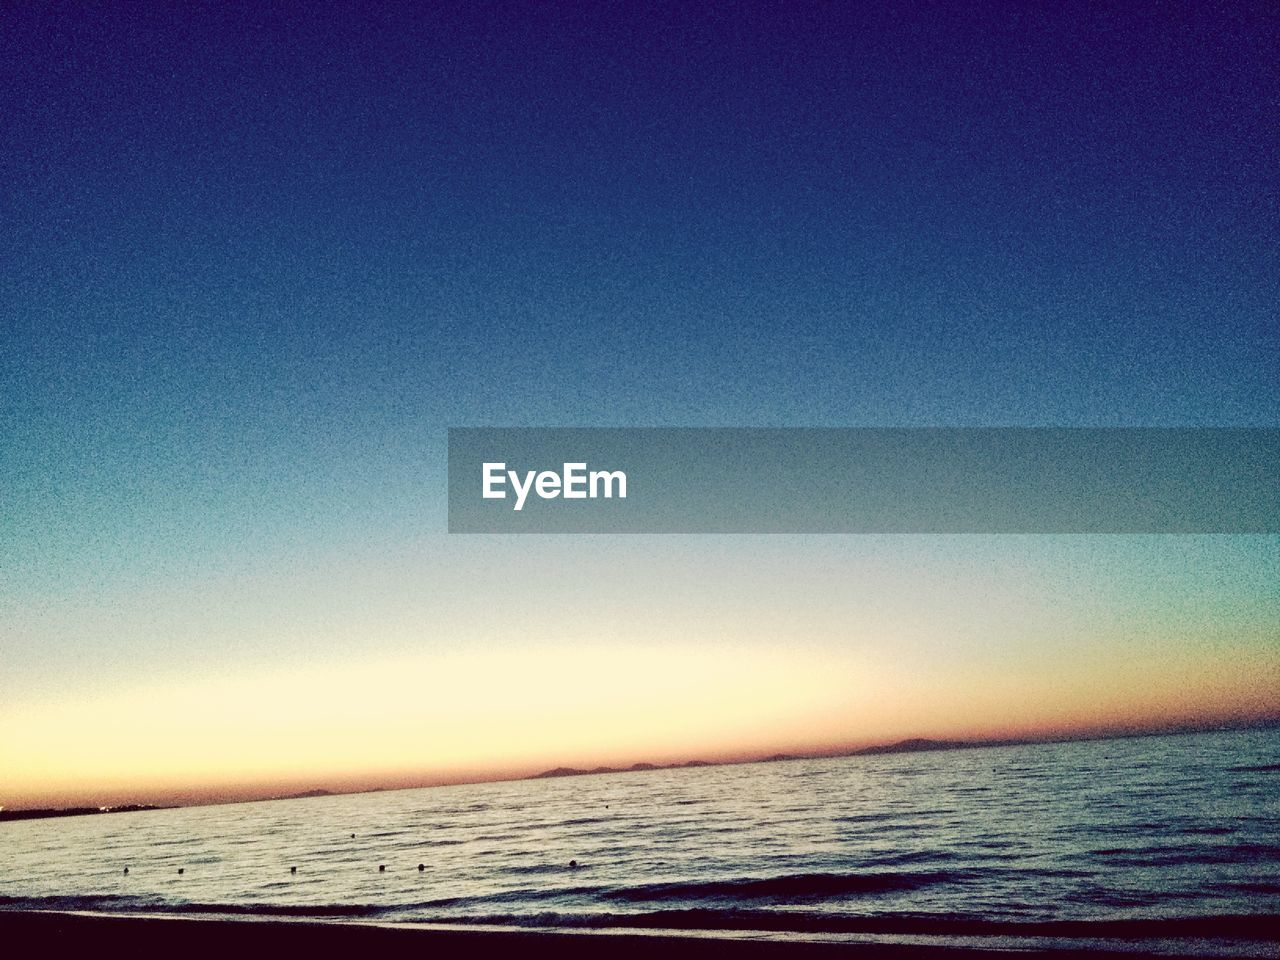 sea, water, sky, scenics - nature, beauty in nature, clear sky, horizon, copy space, tranquil scene, tranquility, horizon over water, blue, nature, land, sunset, beach, outdoors, no people, idyllic